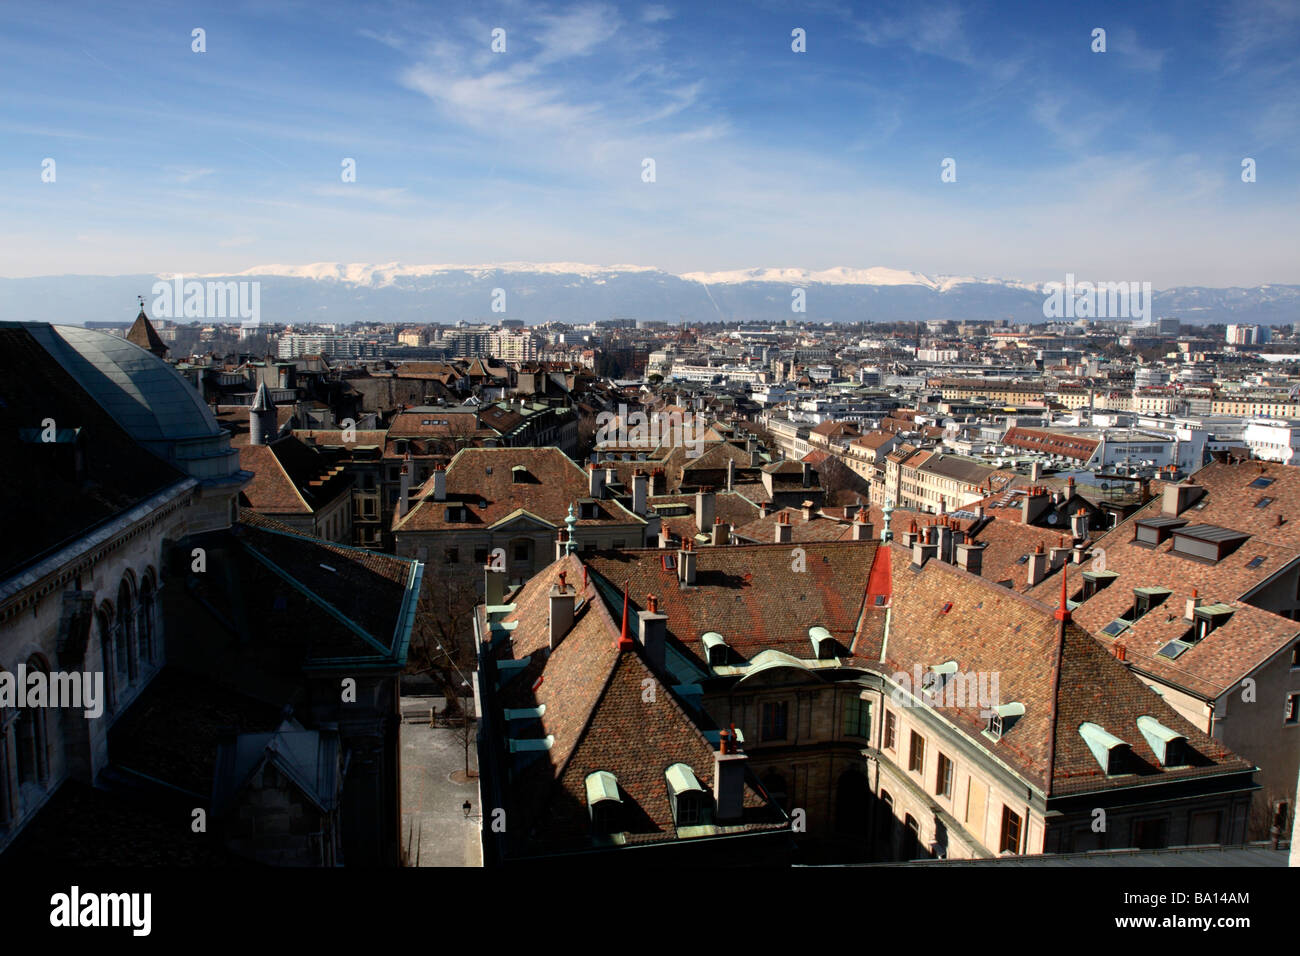 Old Town, Geneva, seen from St Peter's Cathedral, Geneva, Switzerland - Stock Image